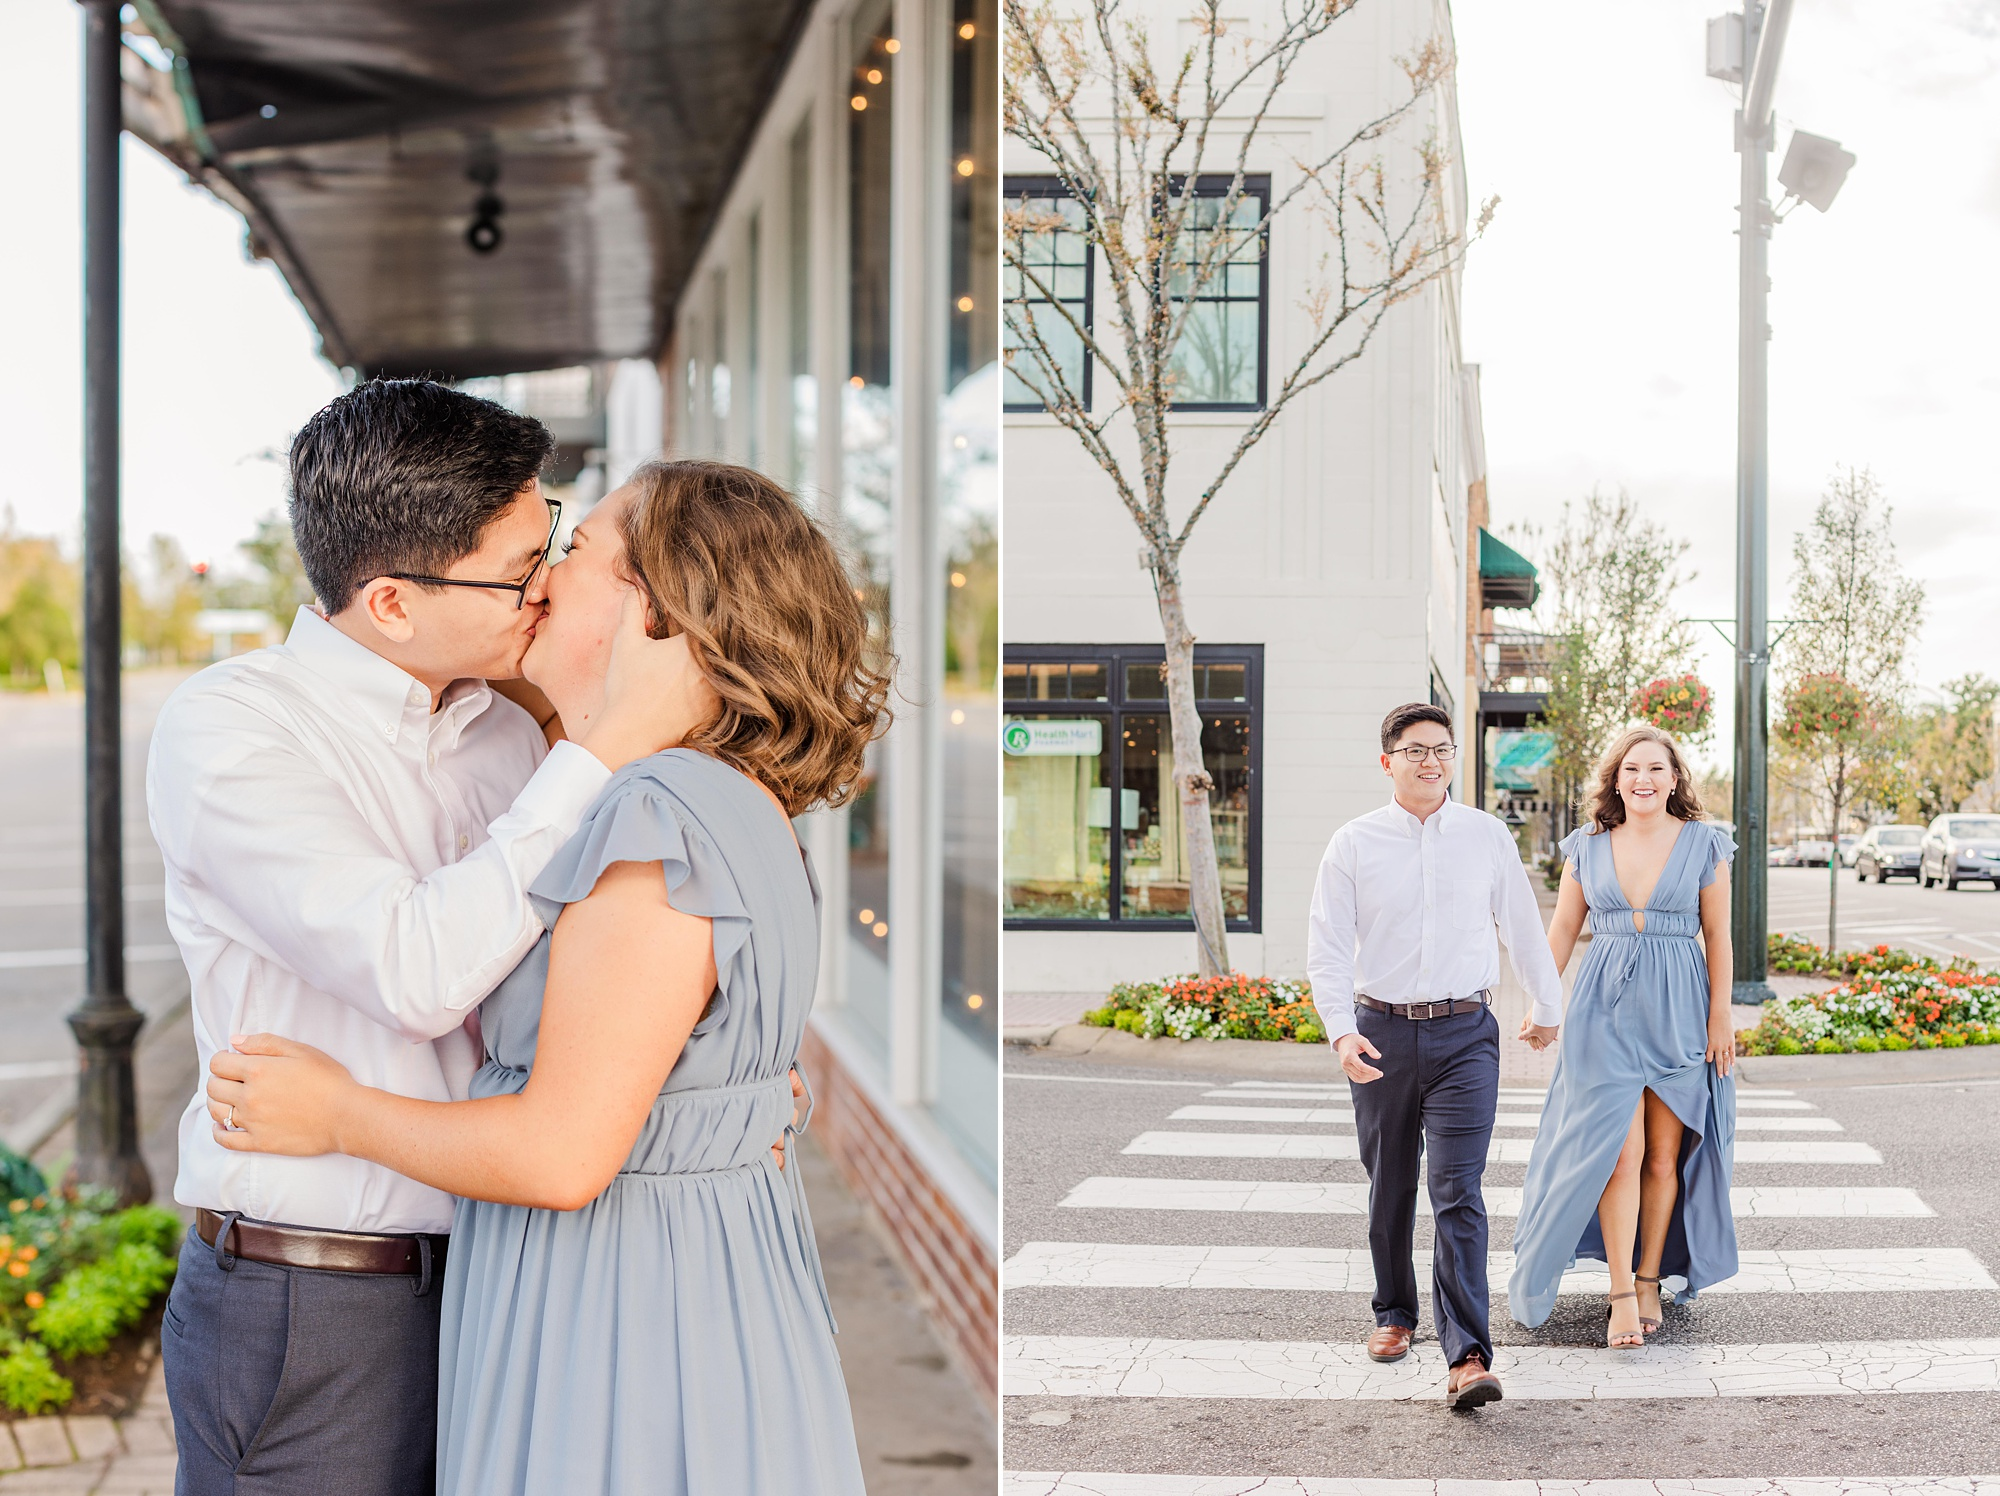 engaged couple poses on sidewalk in Alabama town